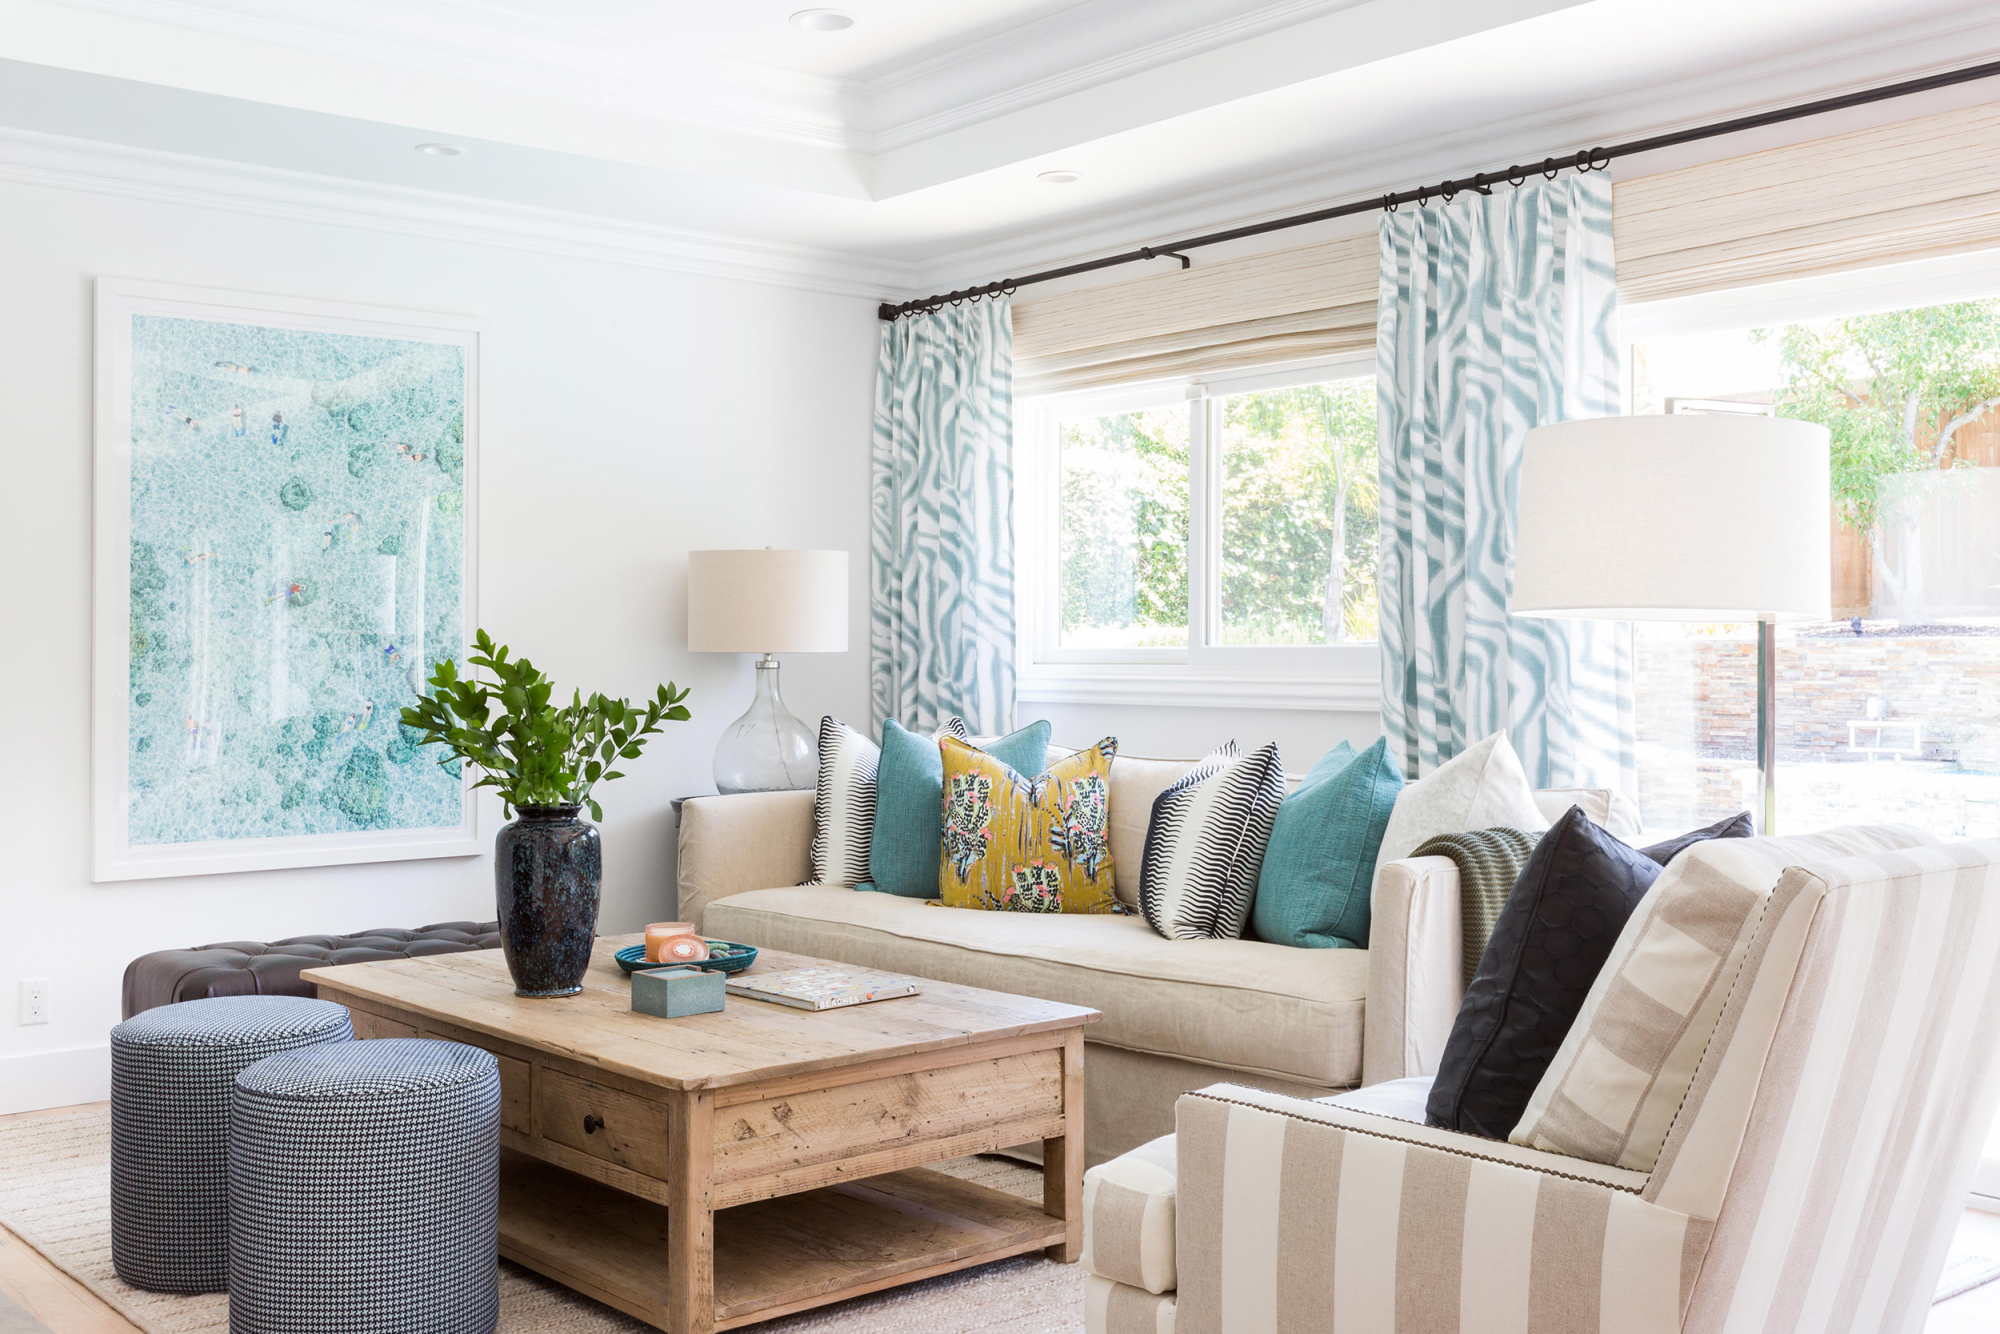 10 home décor resolutions to make in 2019 gray malin